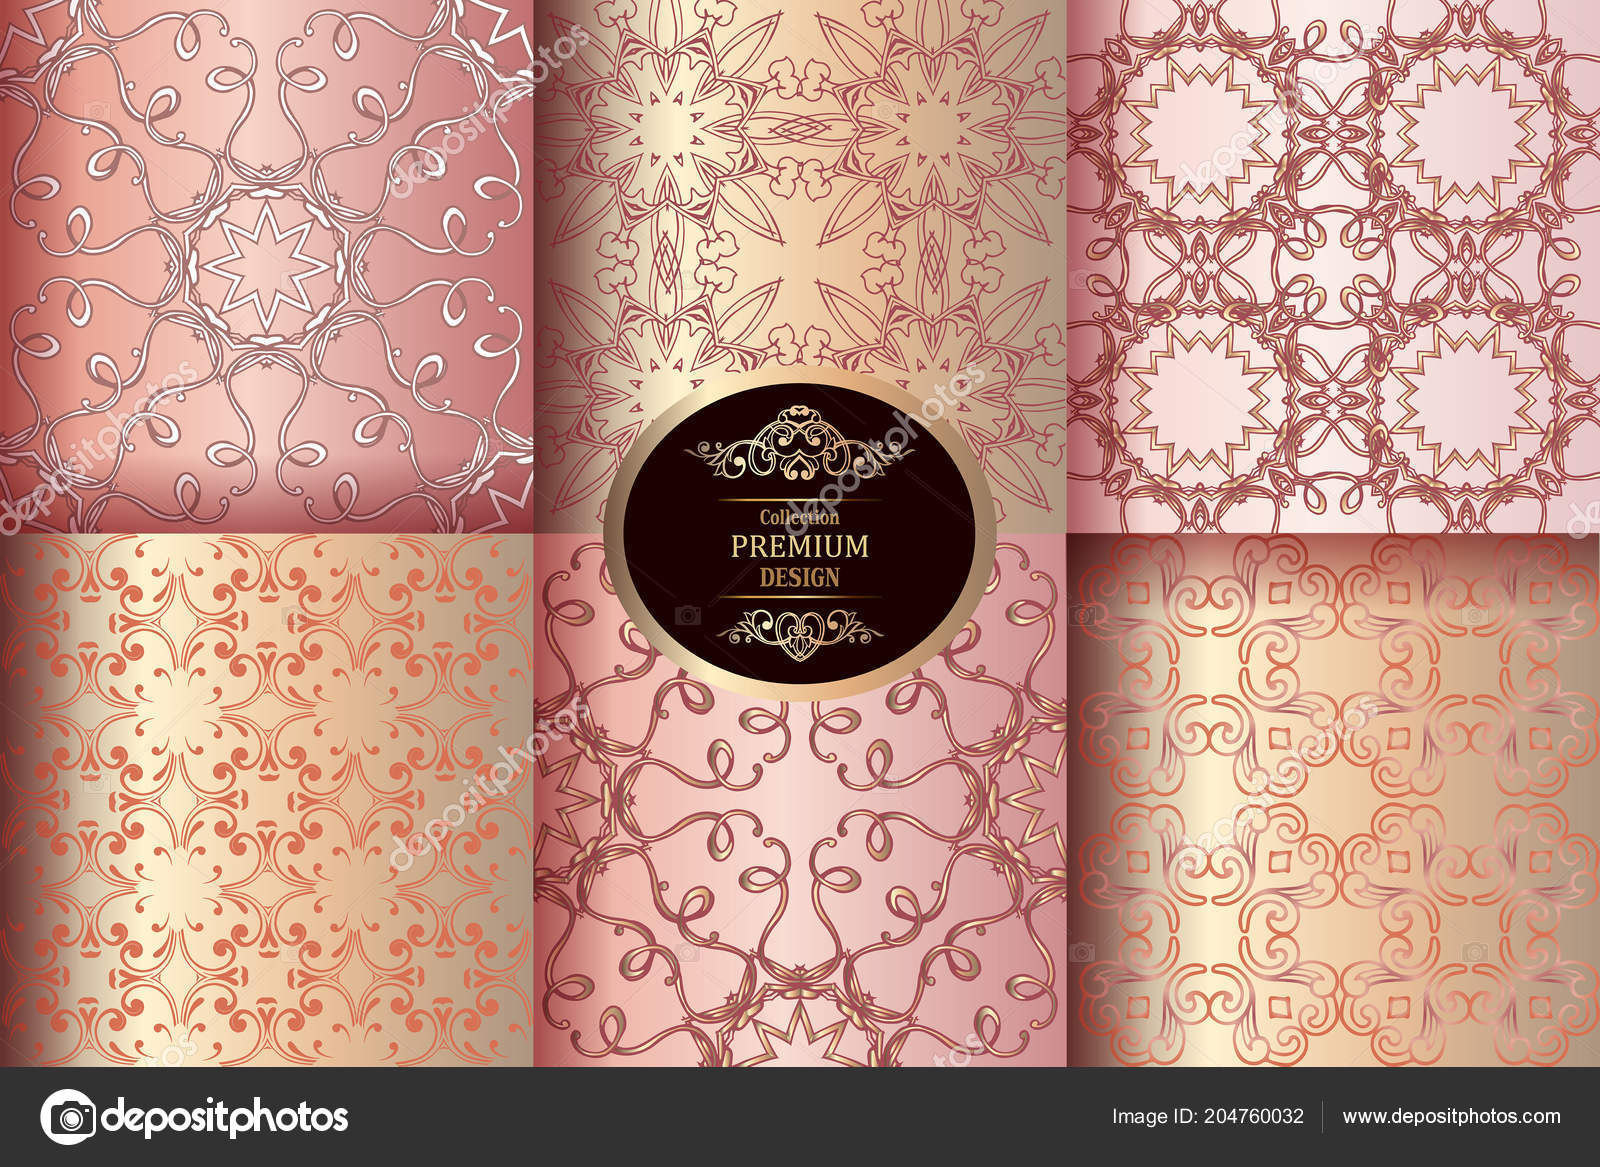 Collection Of Luxury Seamless Patterns Vintage Pink And Gold Wallpaper Victorian Damask Pattern Golden Design Elements